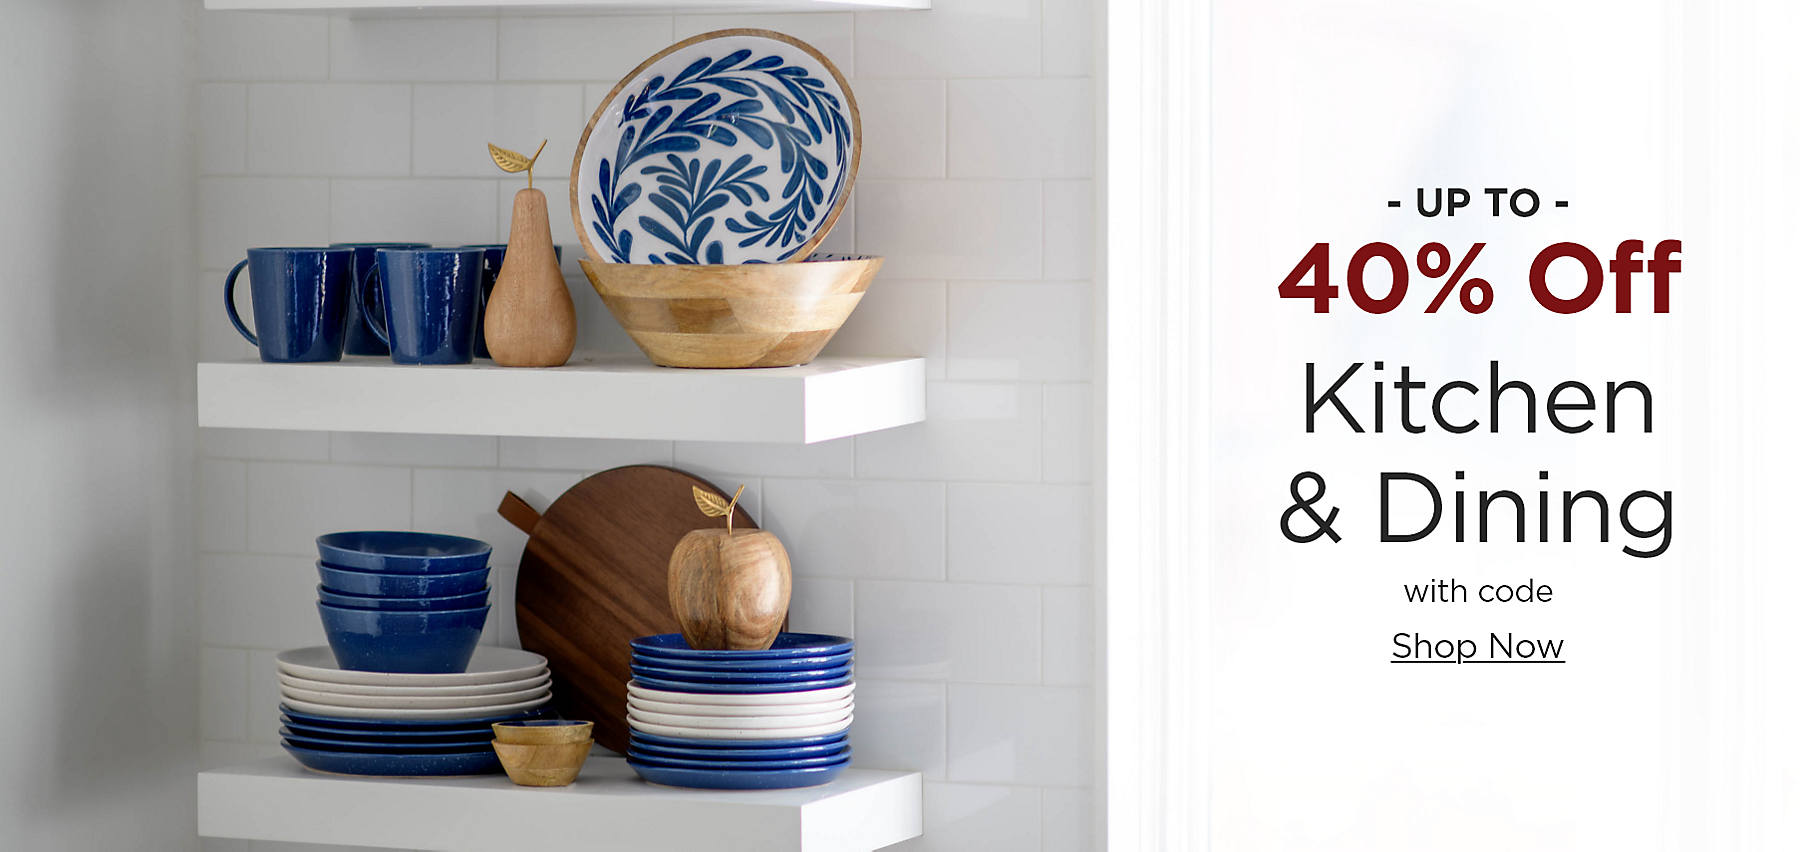 Up to 40% Off Kitchen & Dining with code: COZY Shop Now